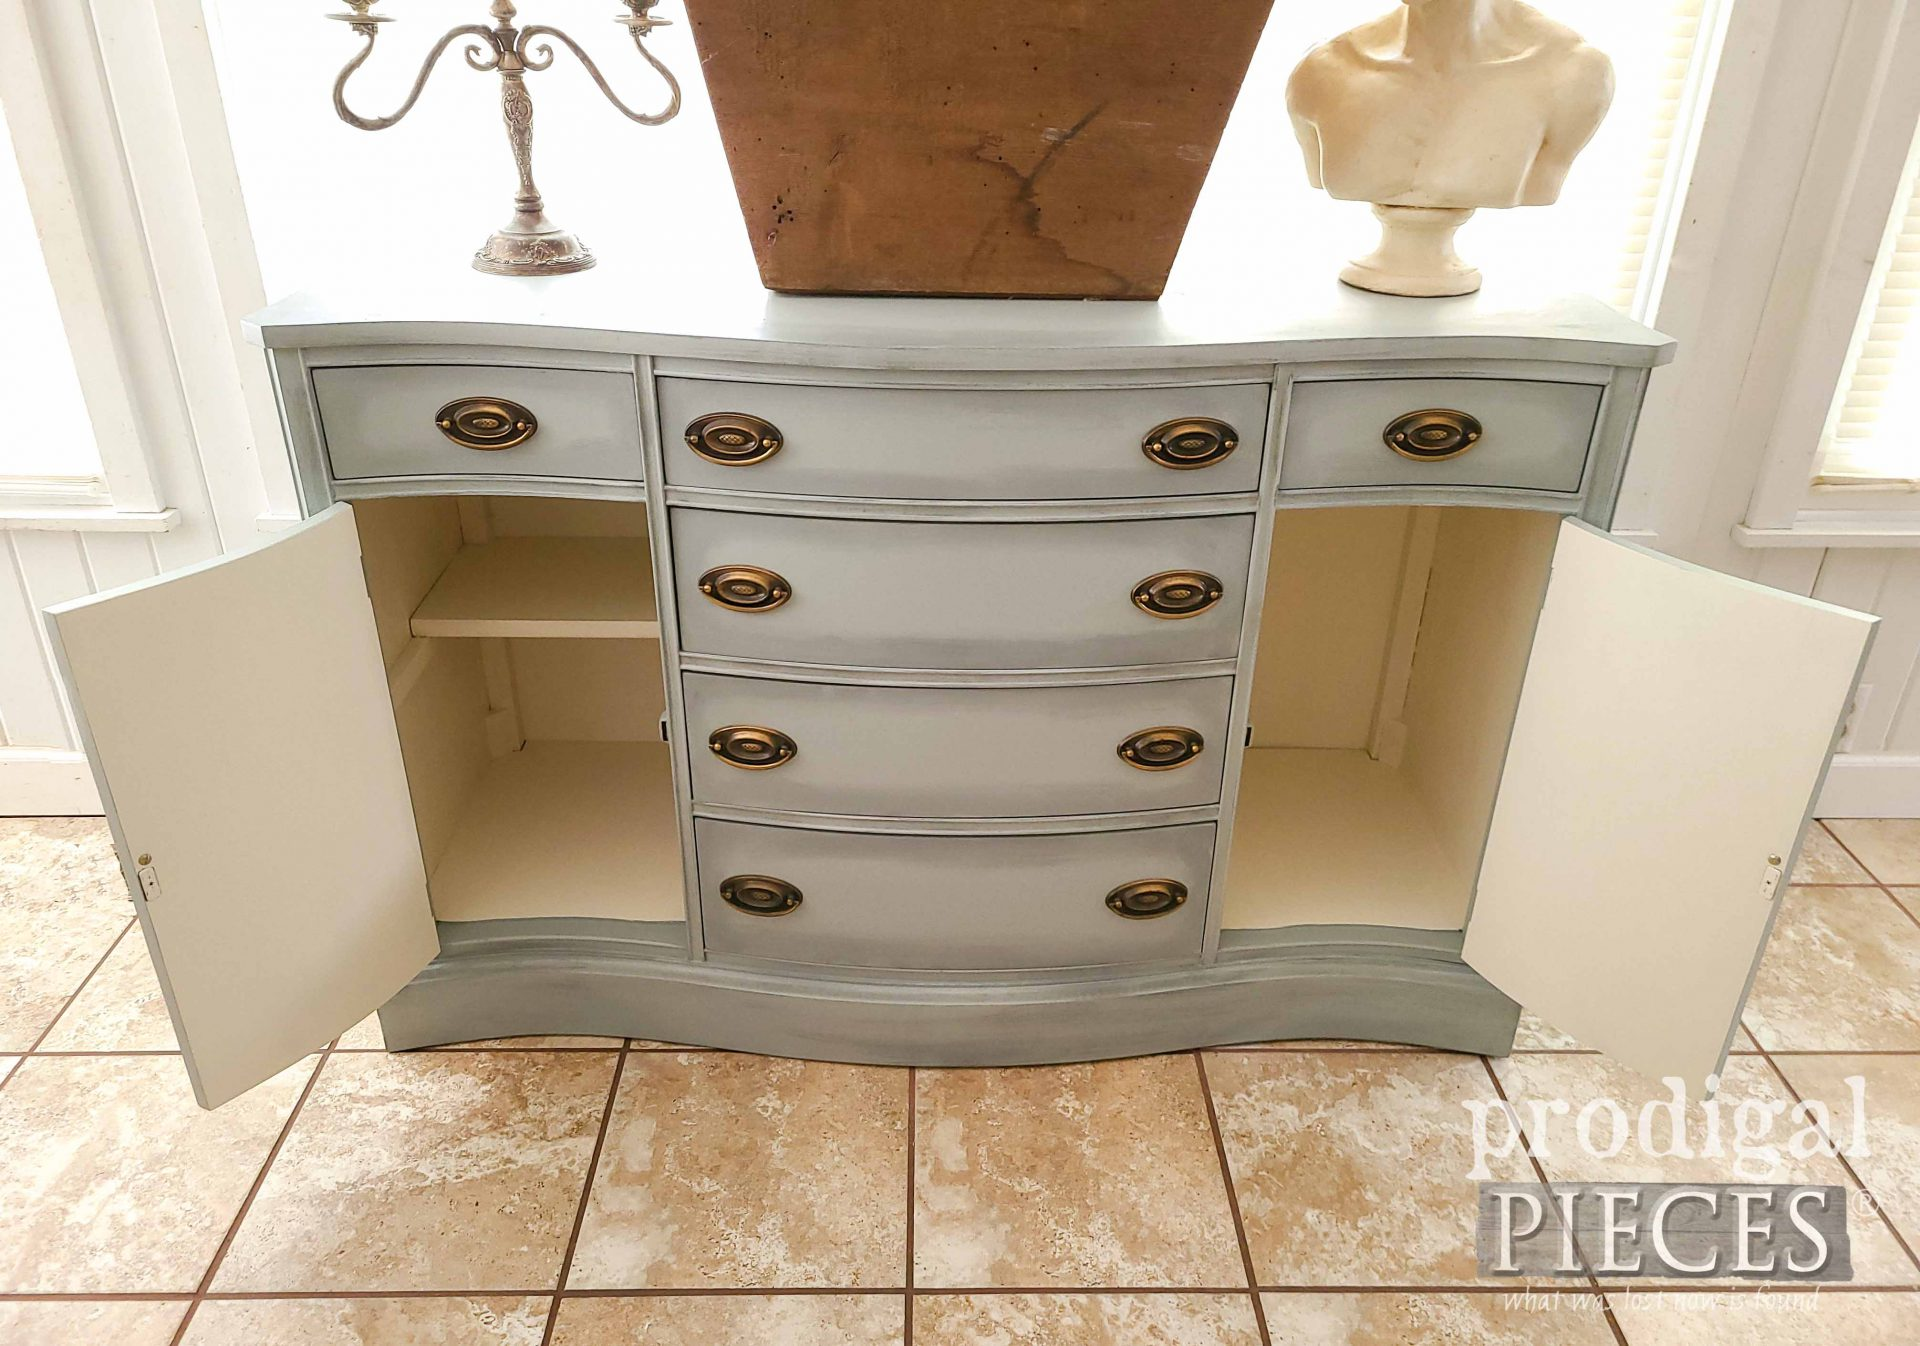 Open Buffet Doors with Contrasting Color by Larissa of Prodigal Pieces | prodigalpieces.com #prodigalpieces #diy #furniture #home #farmhouse #homedecor